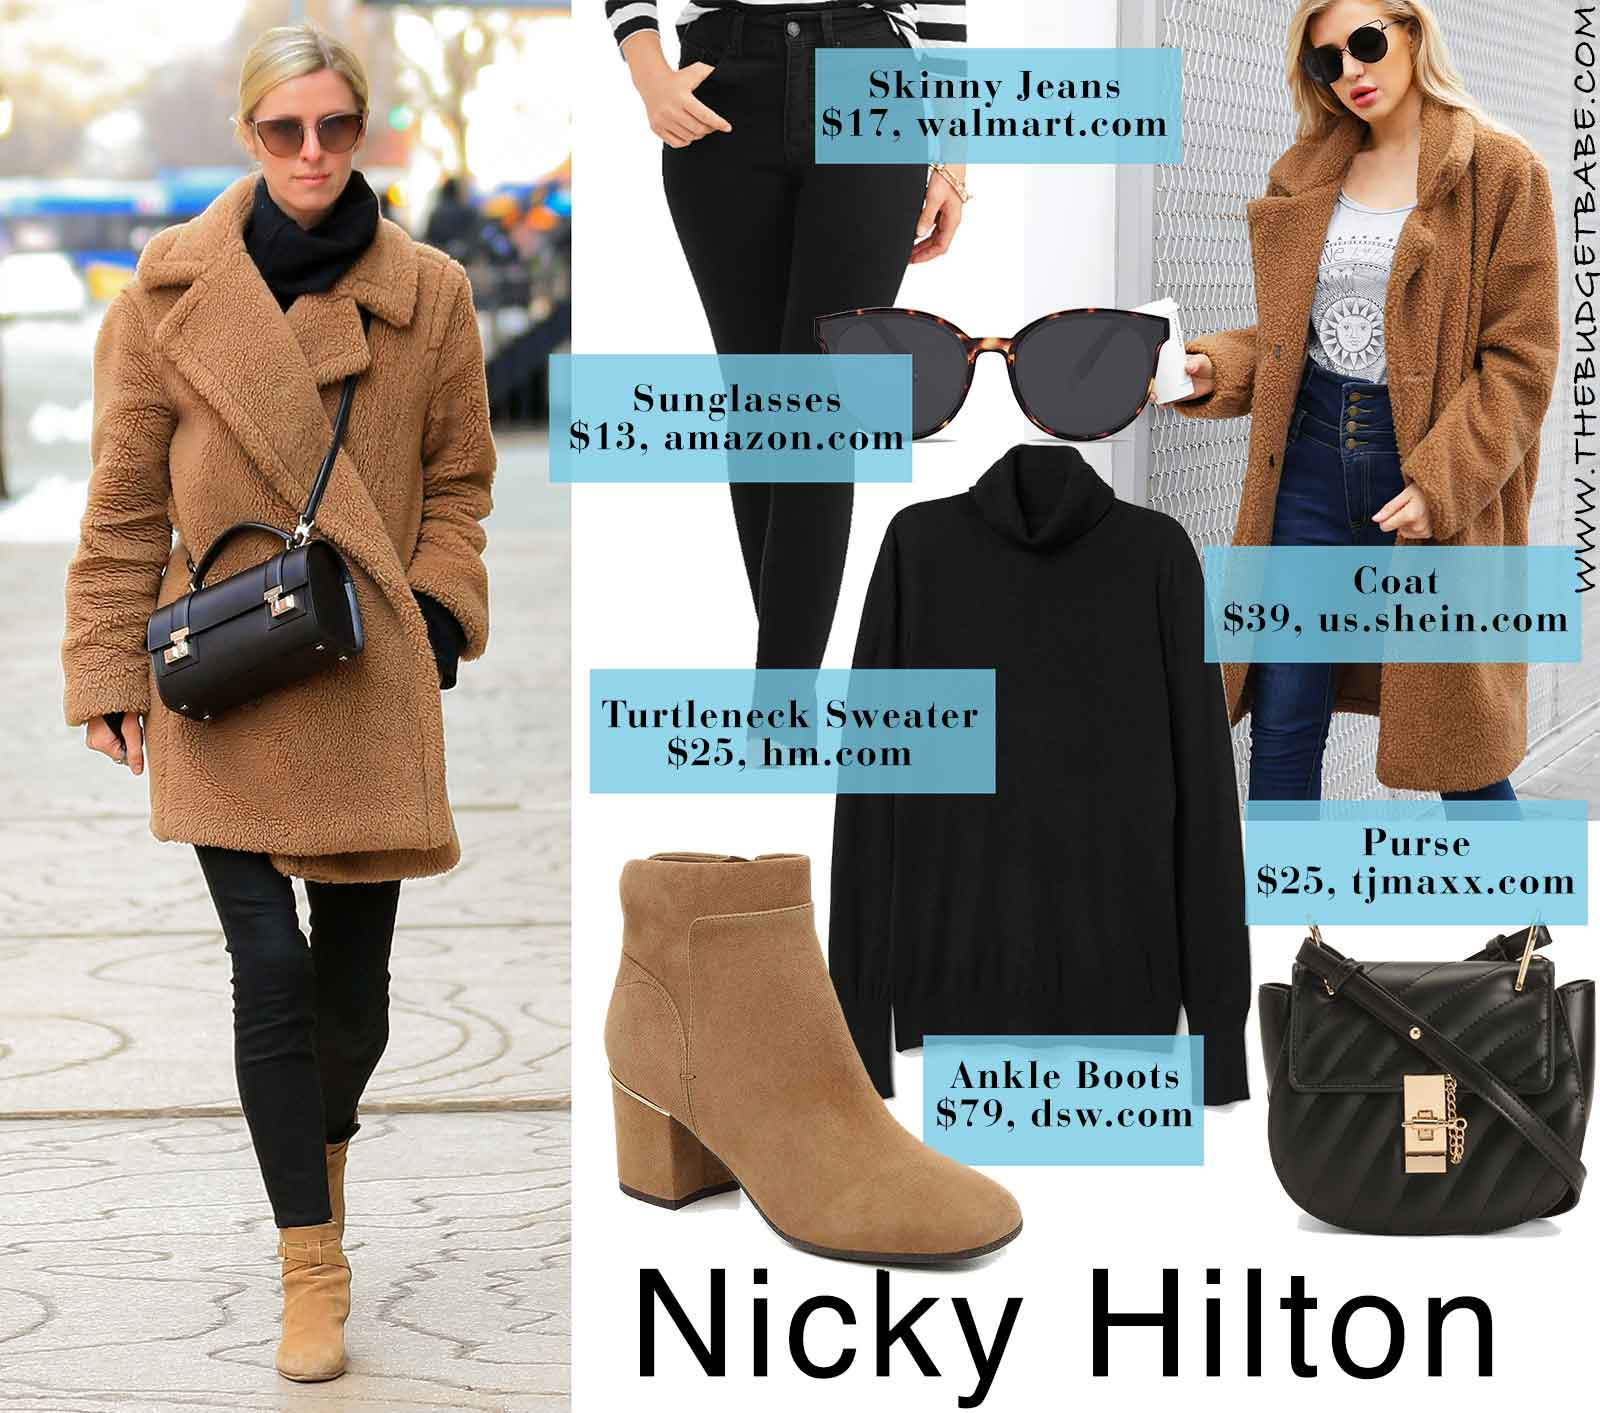 Nicky Hilton's teddy coat and ankle boots look for less